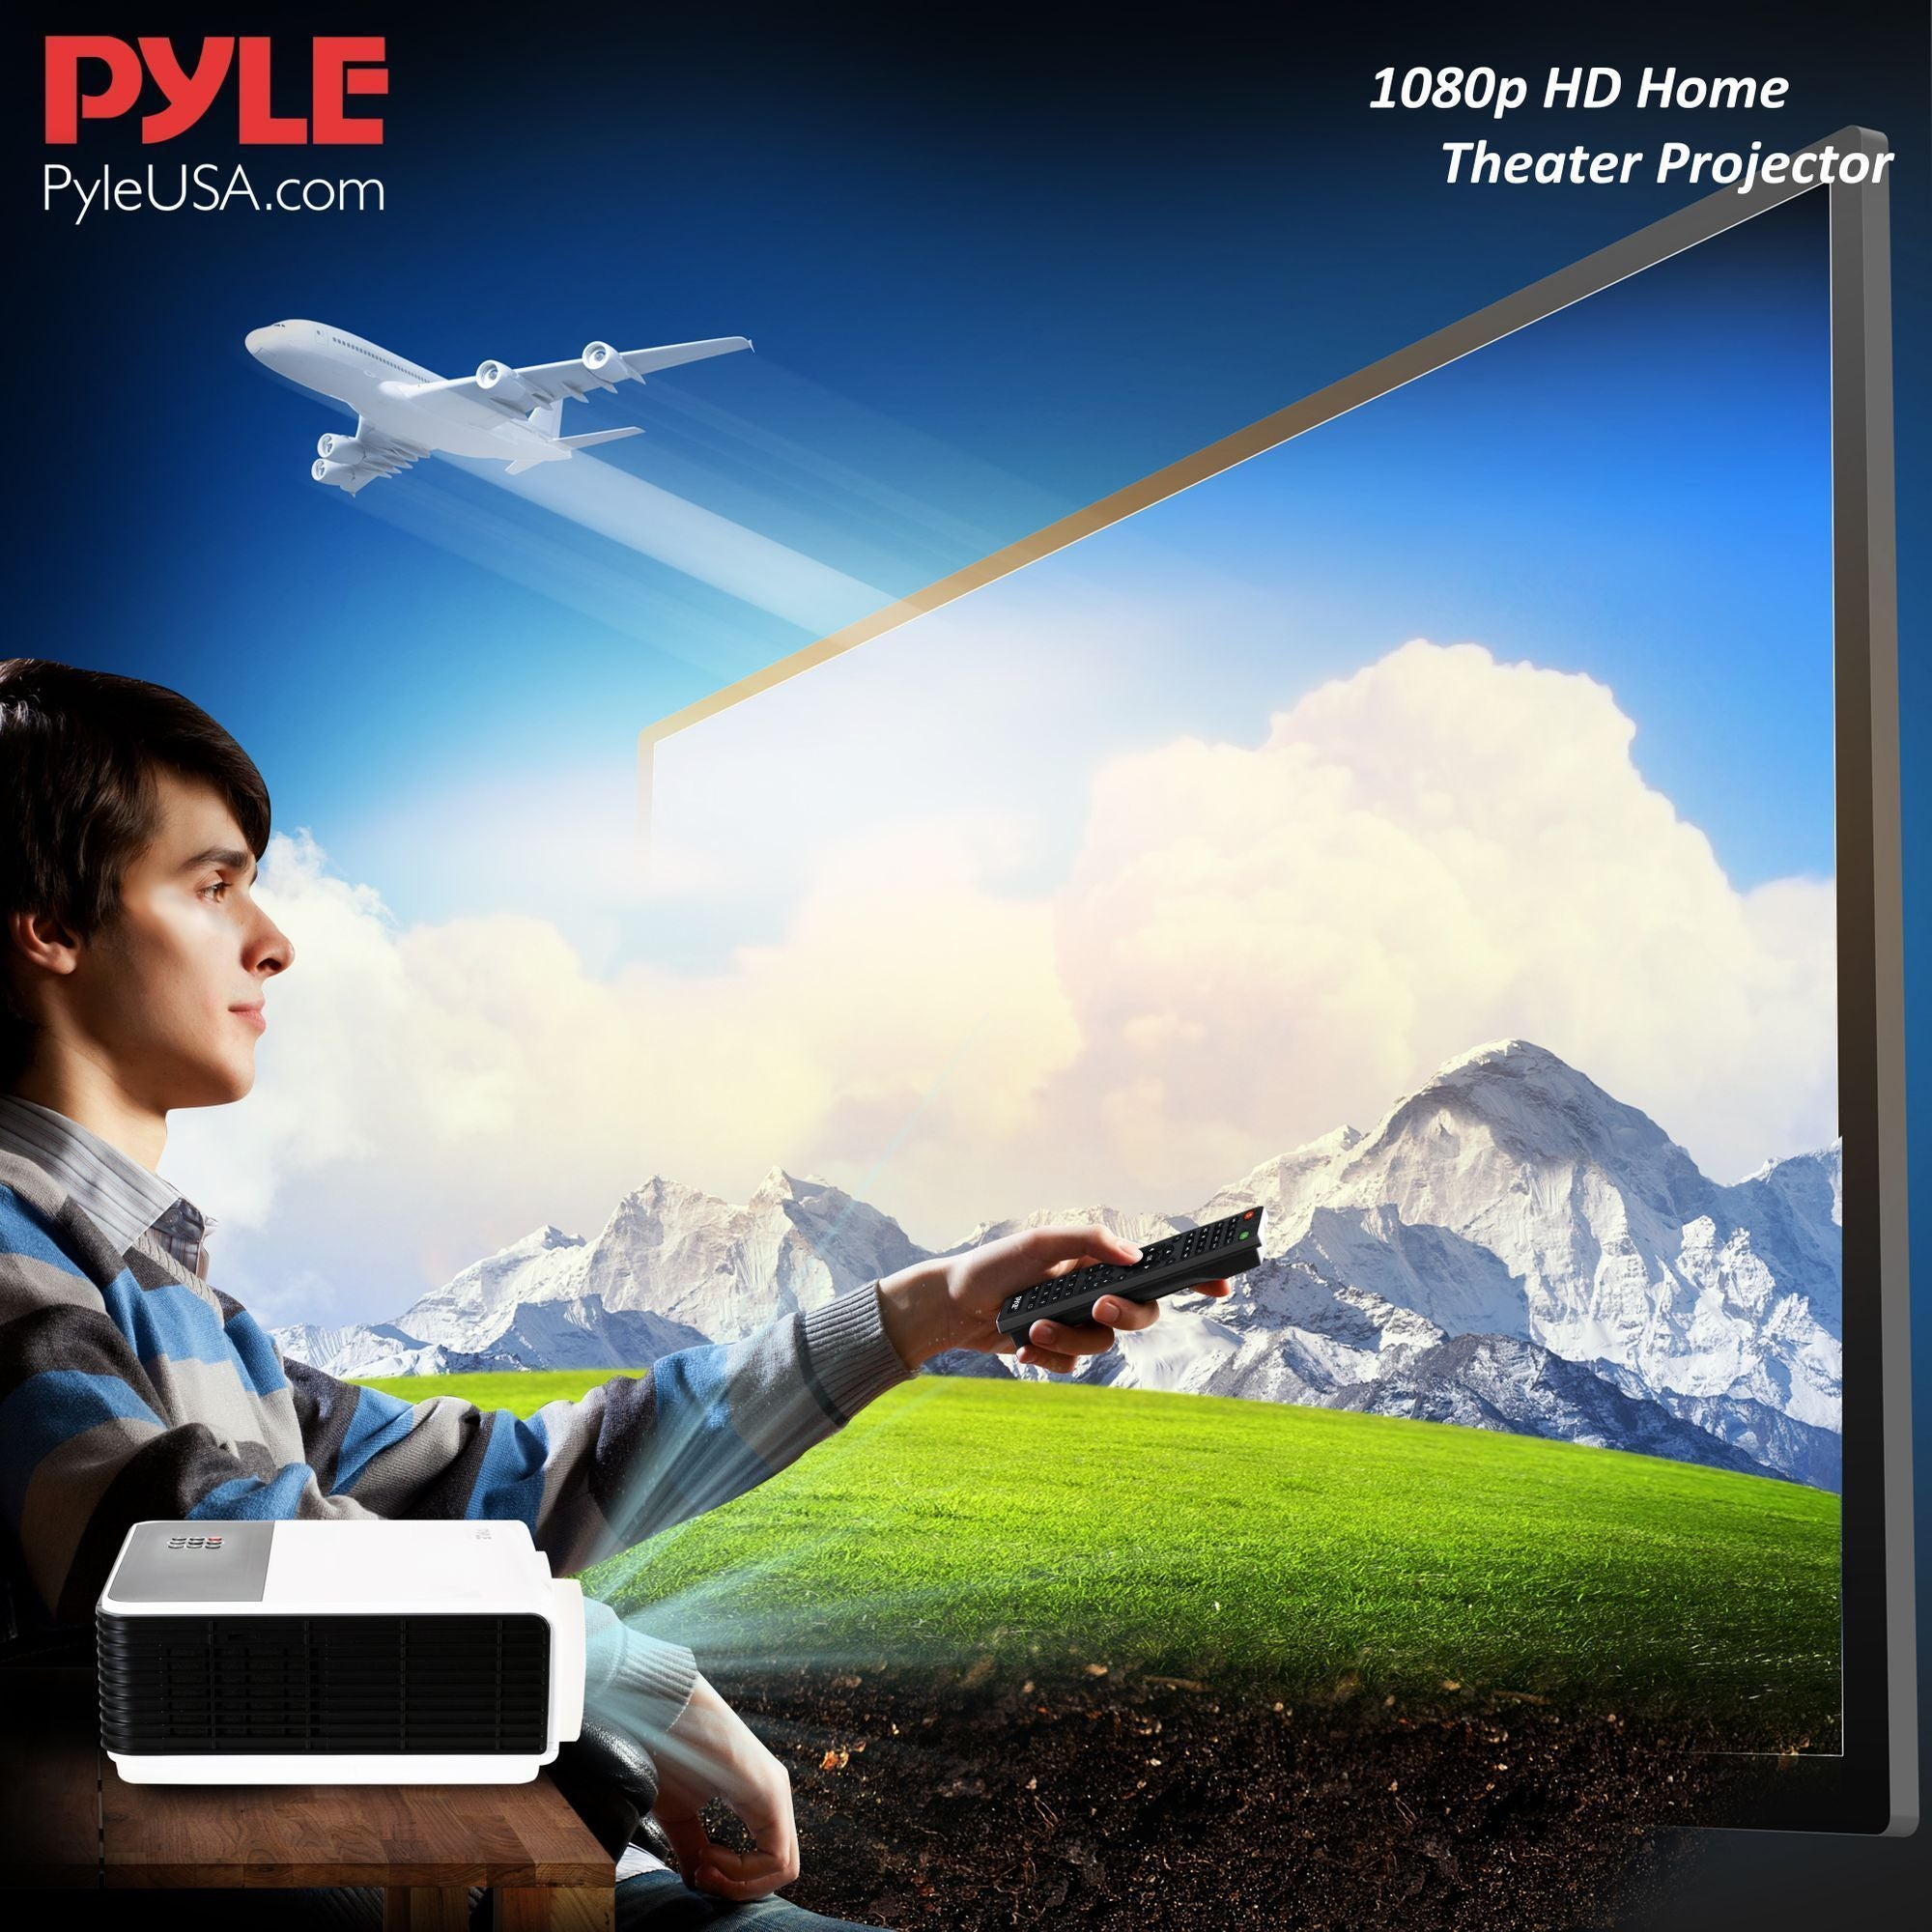 Pyle 1080p HD Home Theater Projector, Works With MAC & PC (PRJLE83)